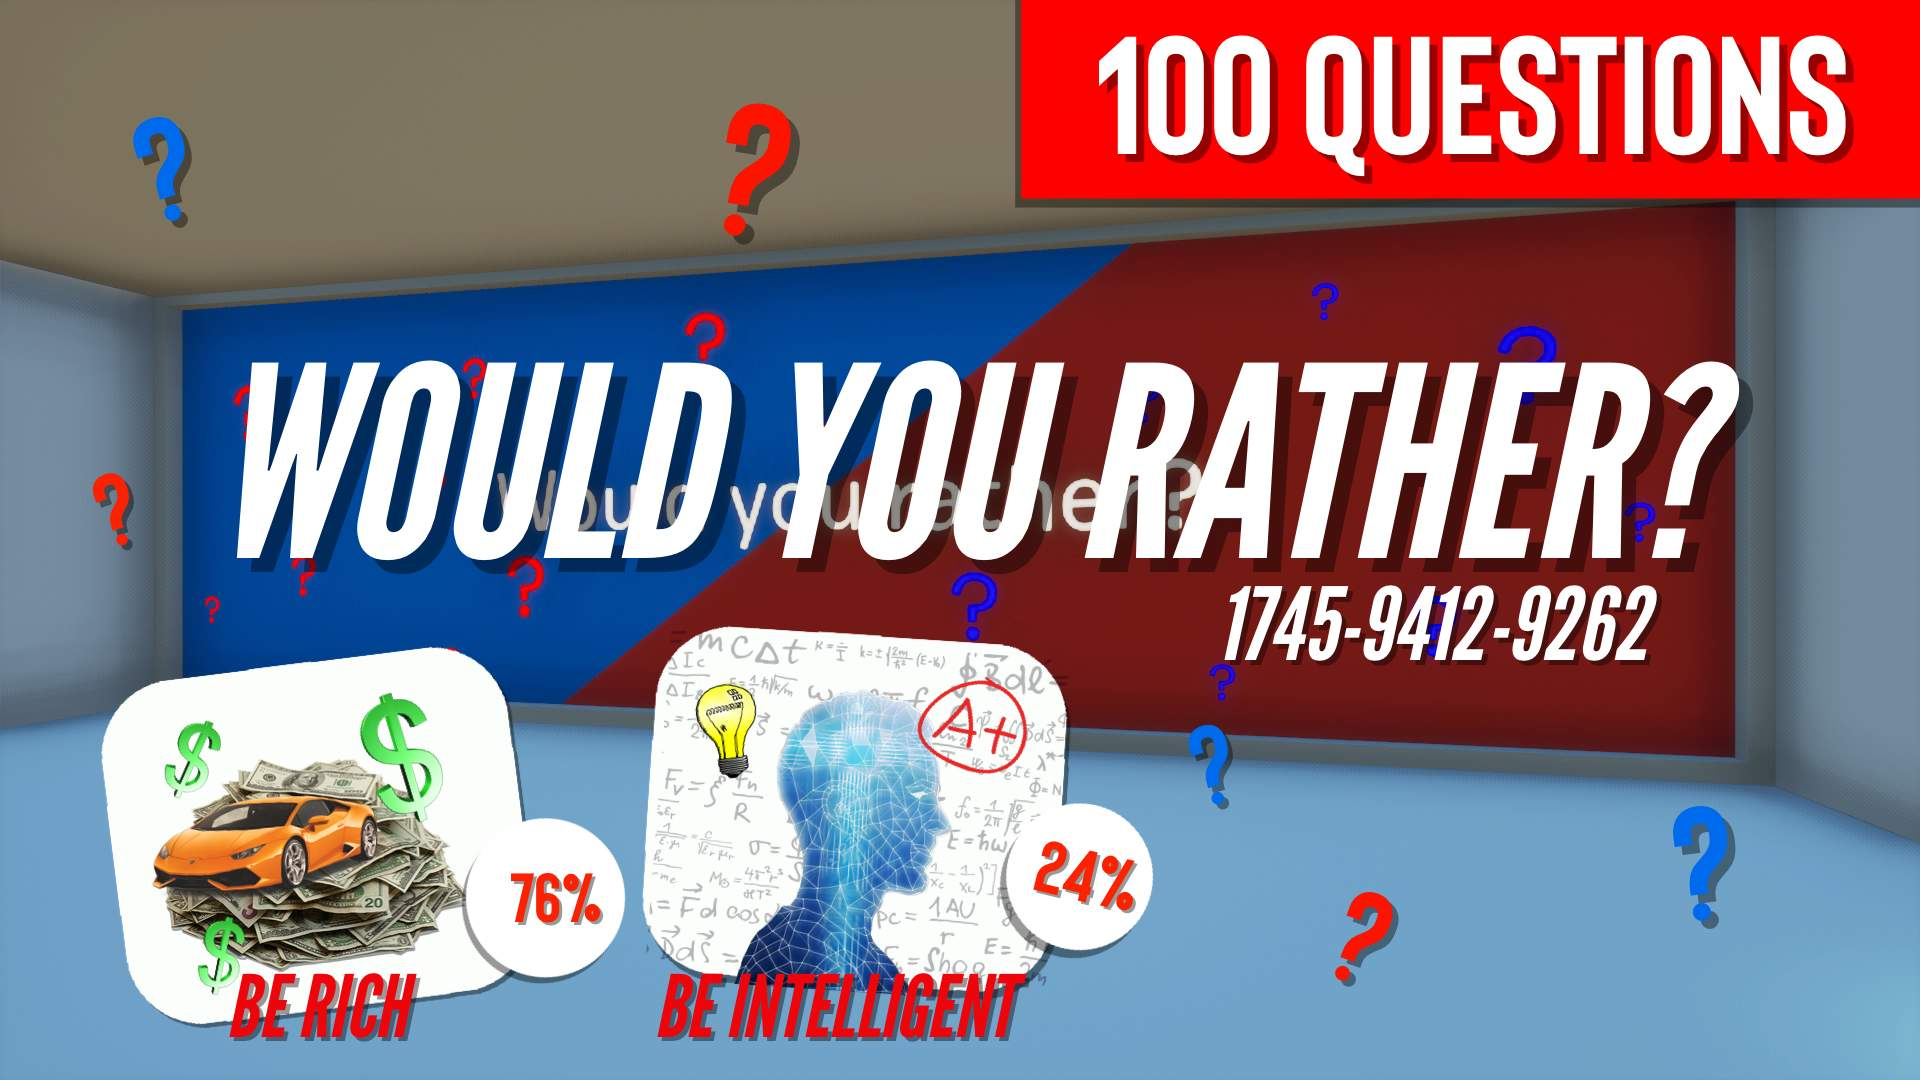 WOULD YOU RATHER 100 QUESTIONS